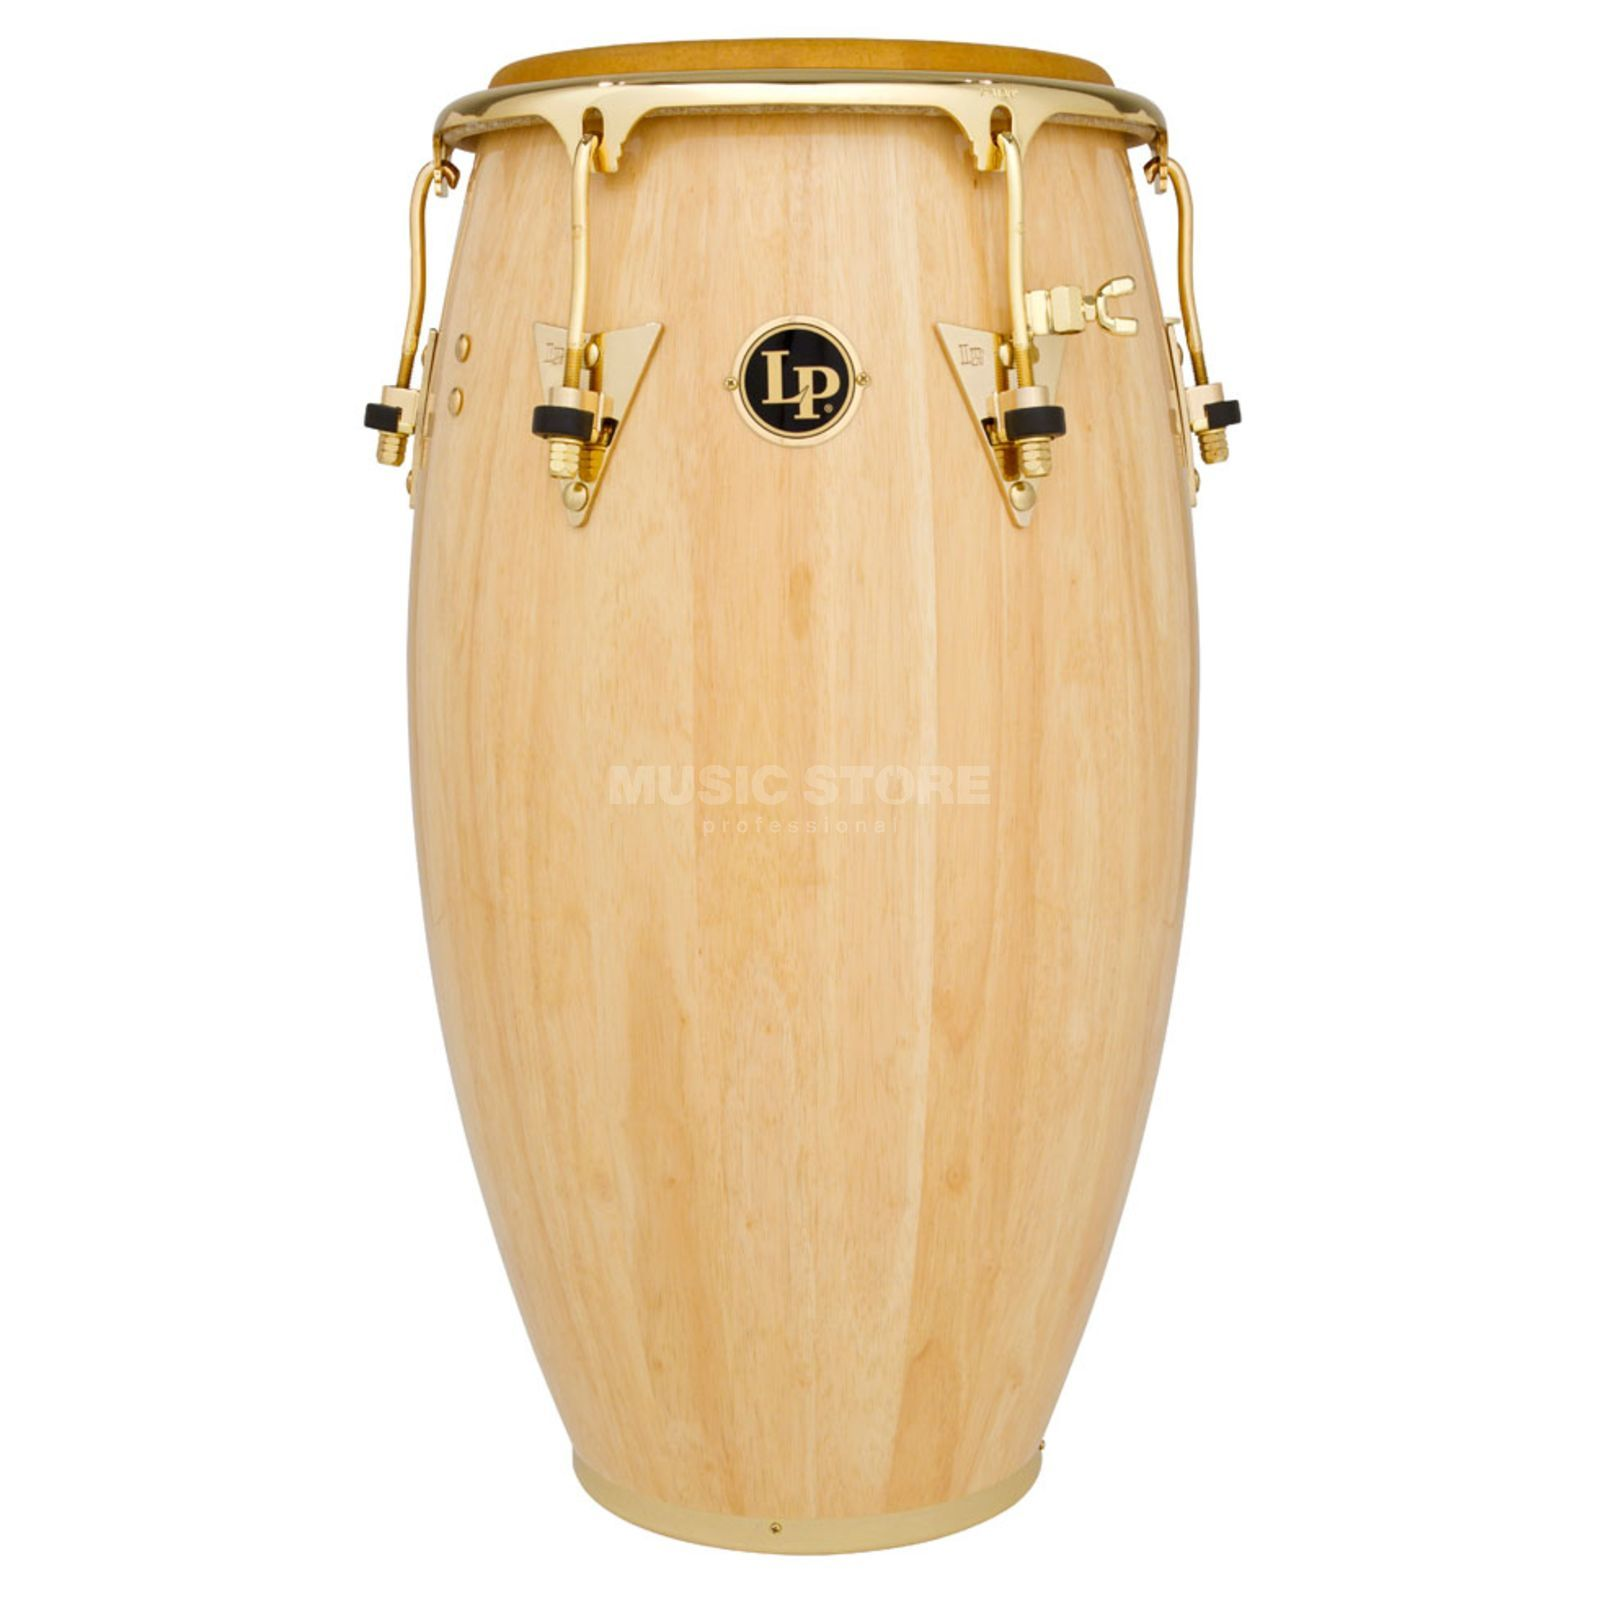 "Latin Percussion Salsa Conga LP252X-AW, 12-1/2"" Tumba, Gold HW Product Image"